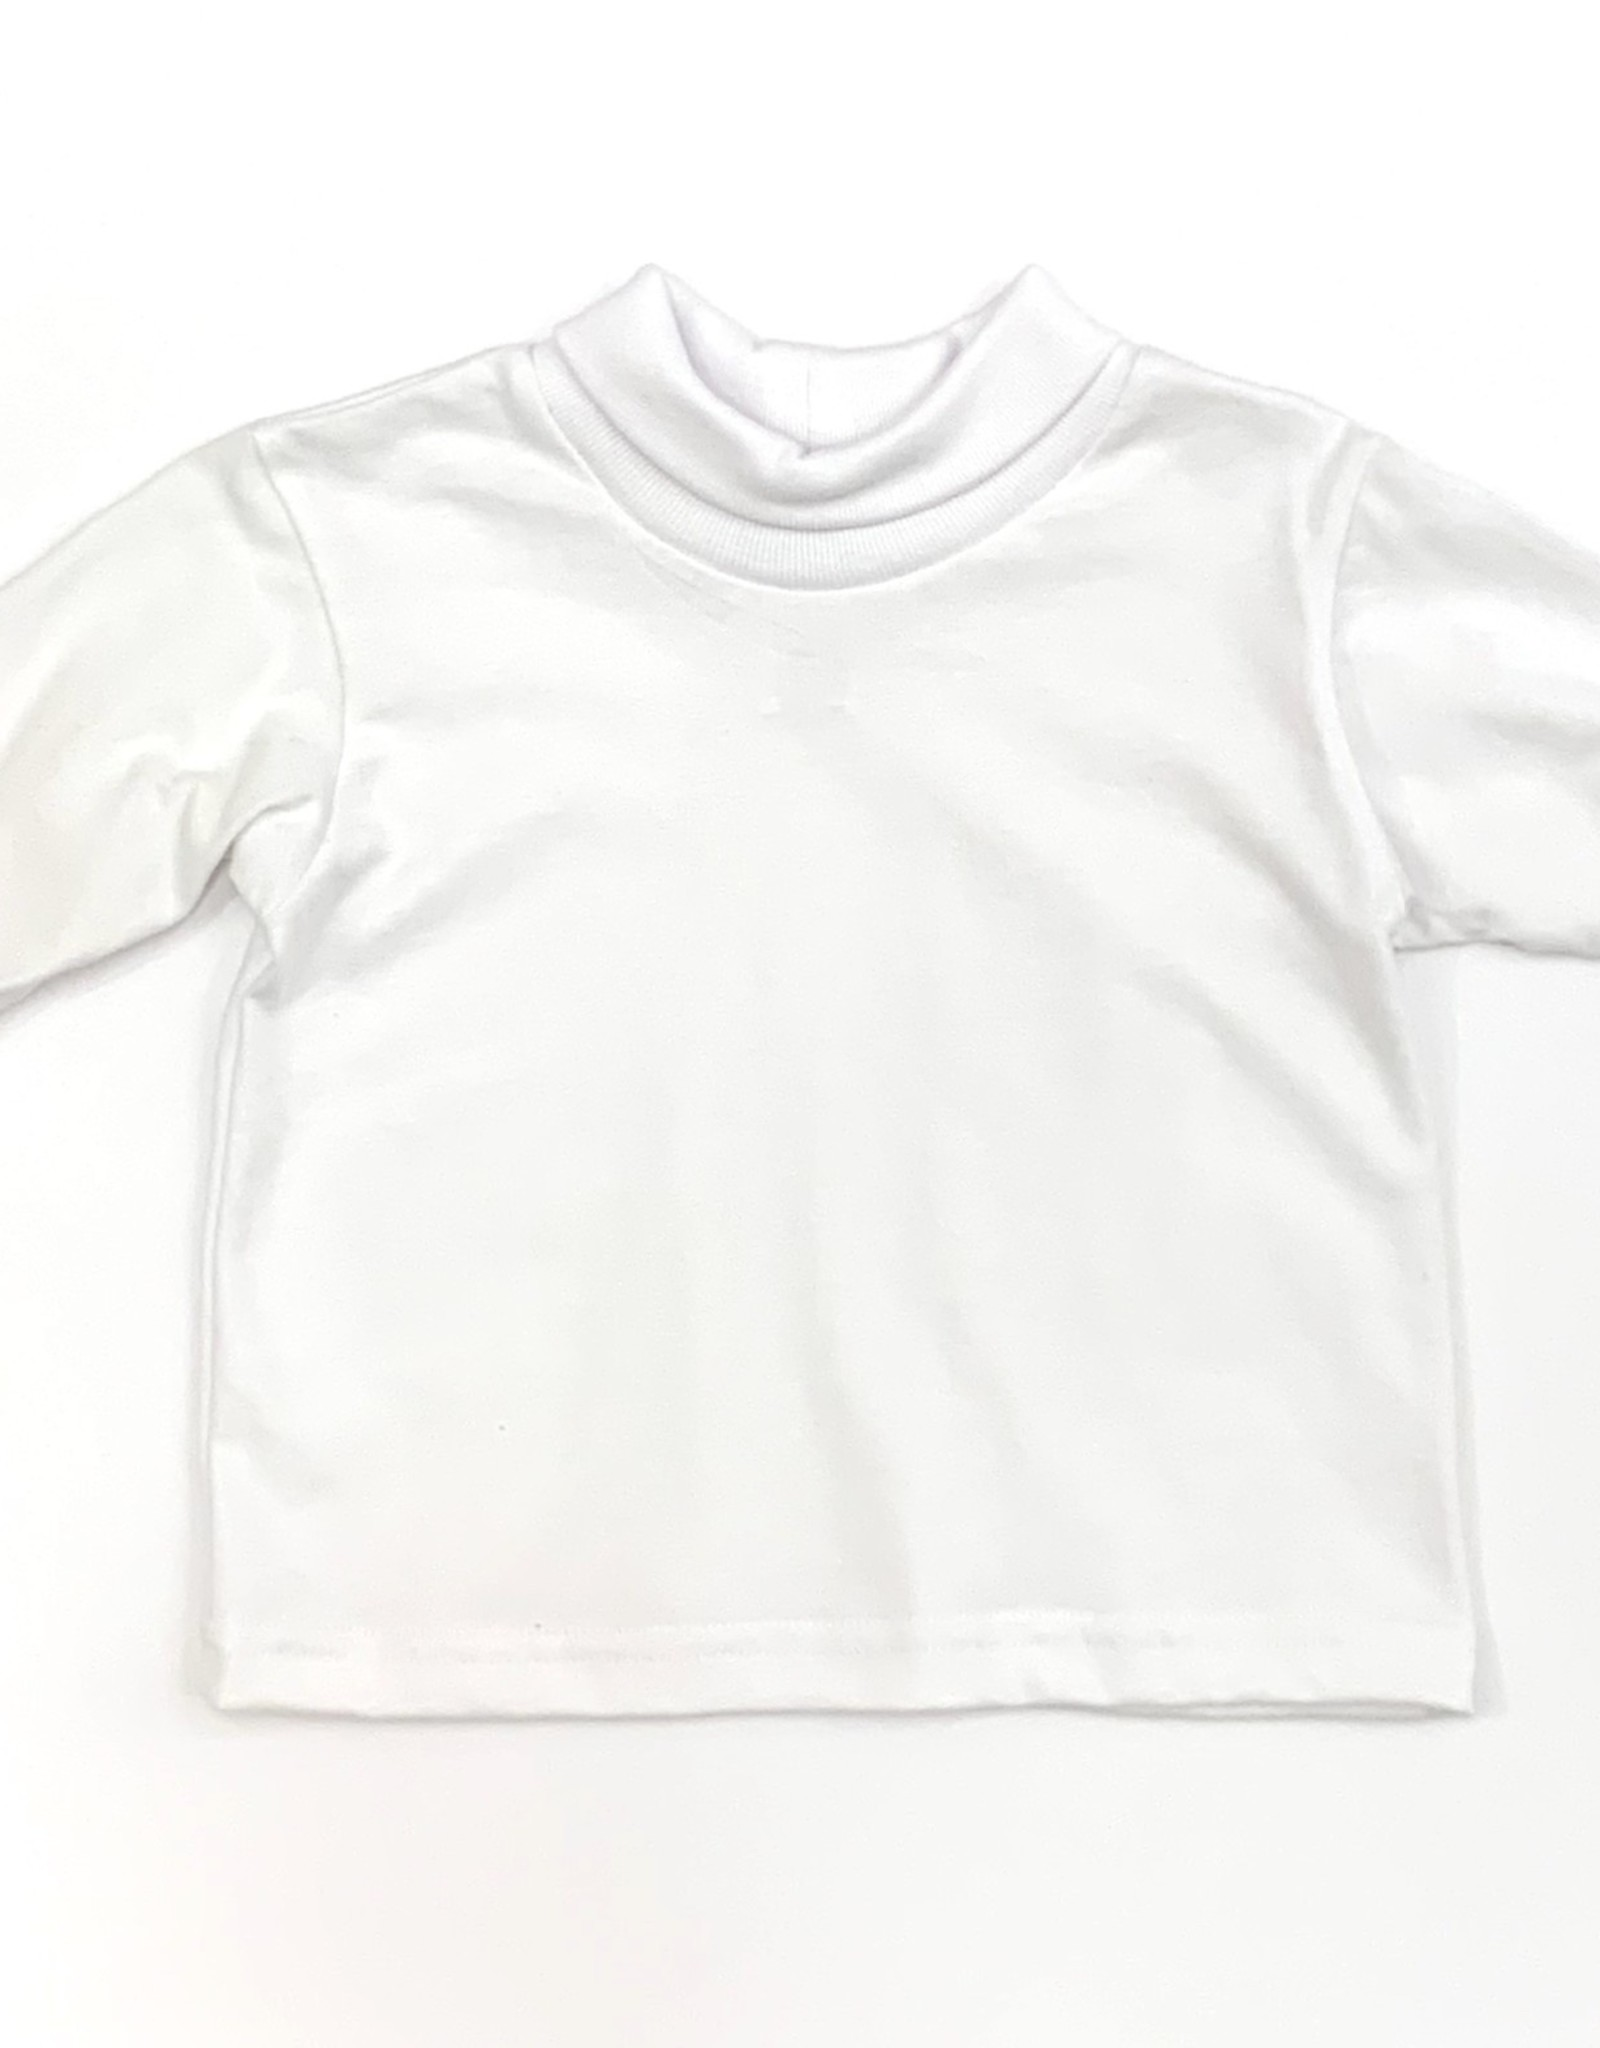 Funtasia Too Unisex White Turtleneck